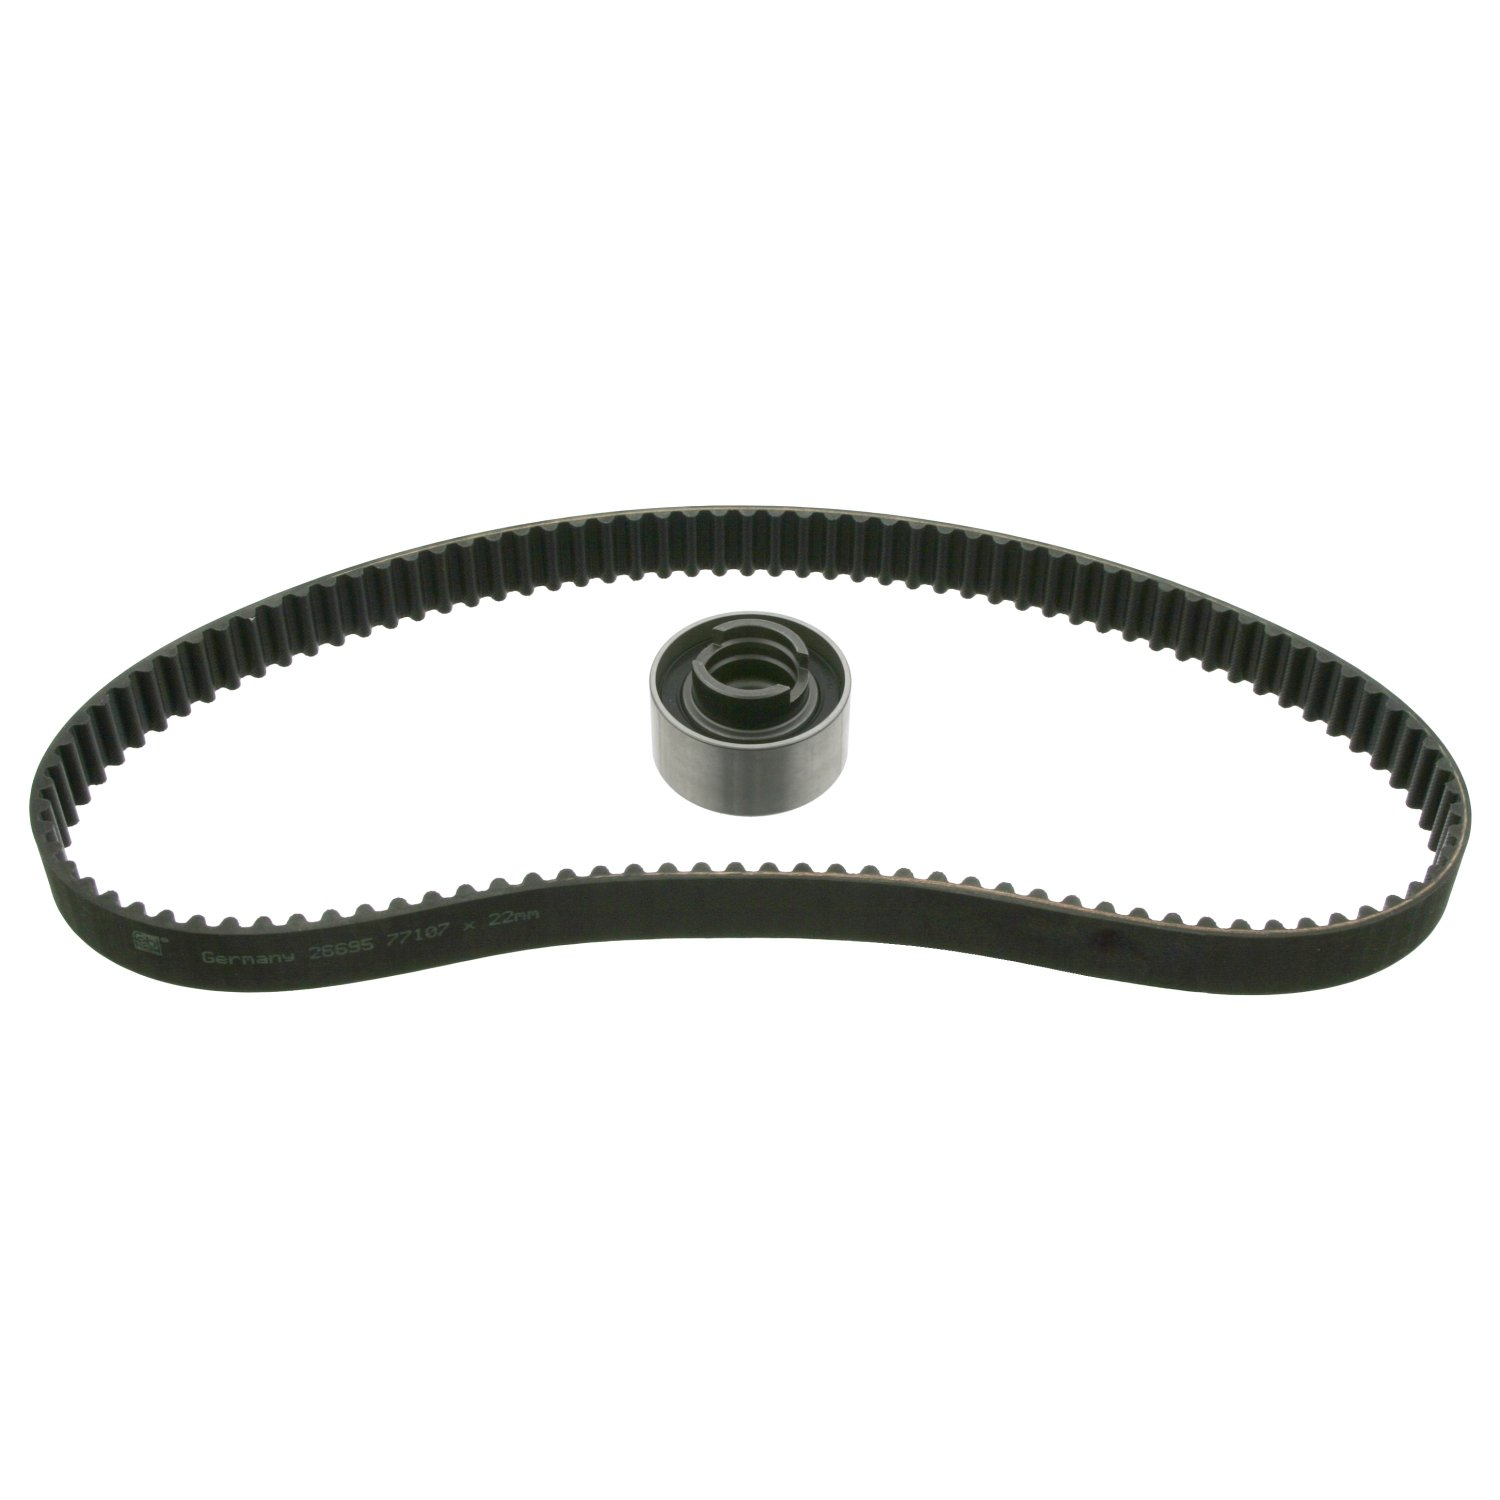 febi bilstein 26905 timing belt kit for camshaft - Pack of 1